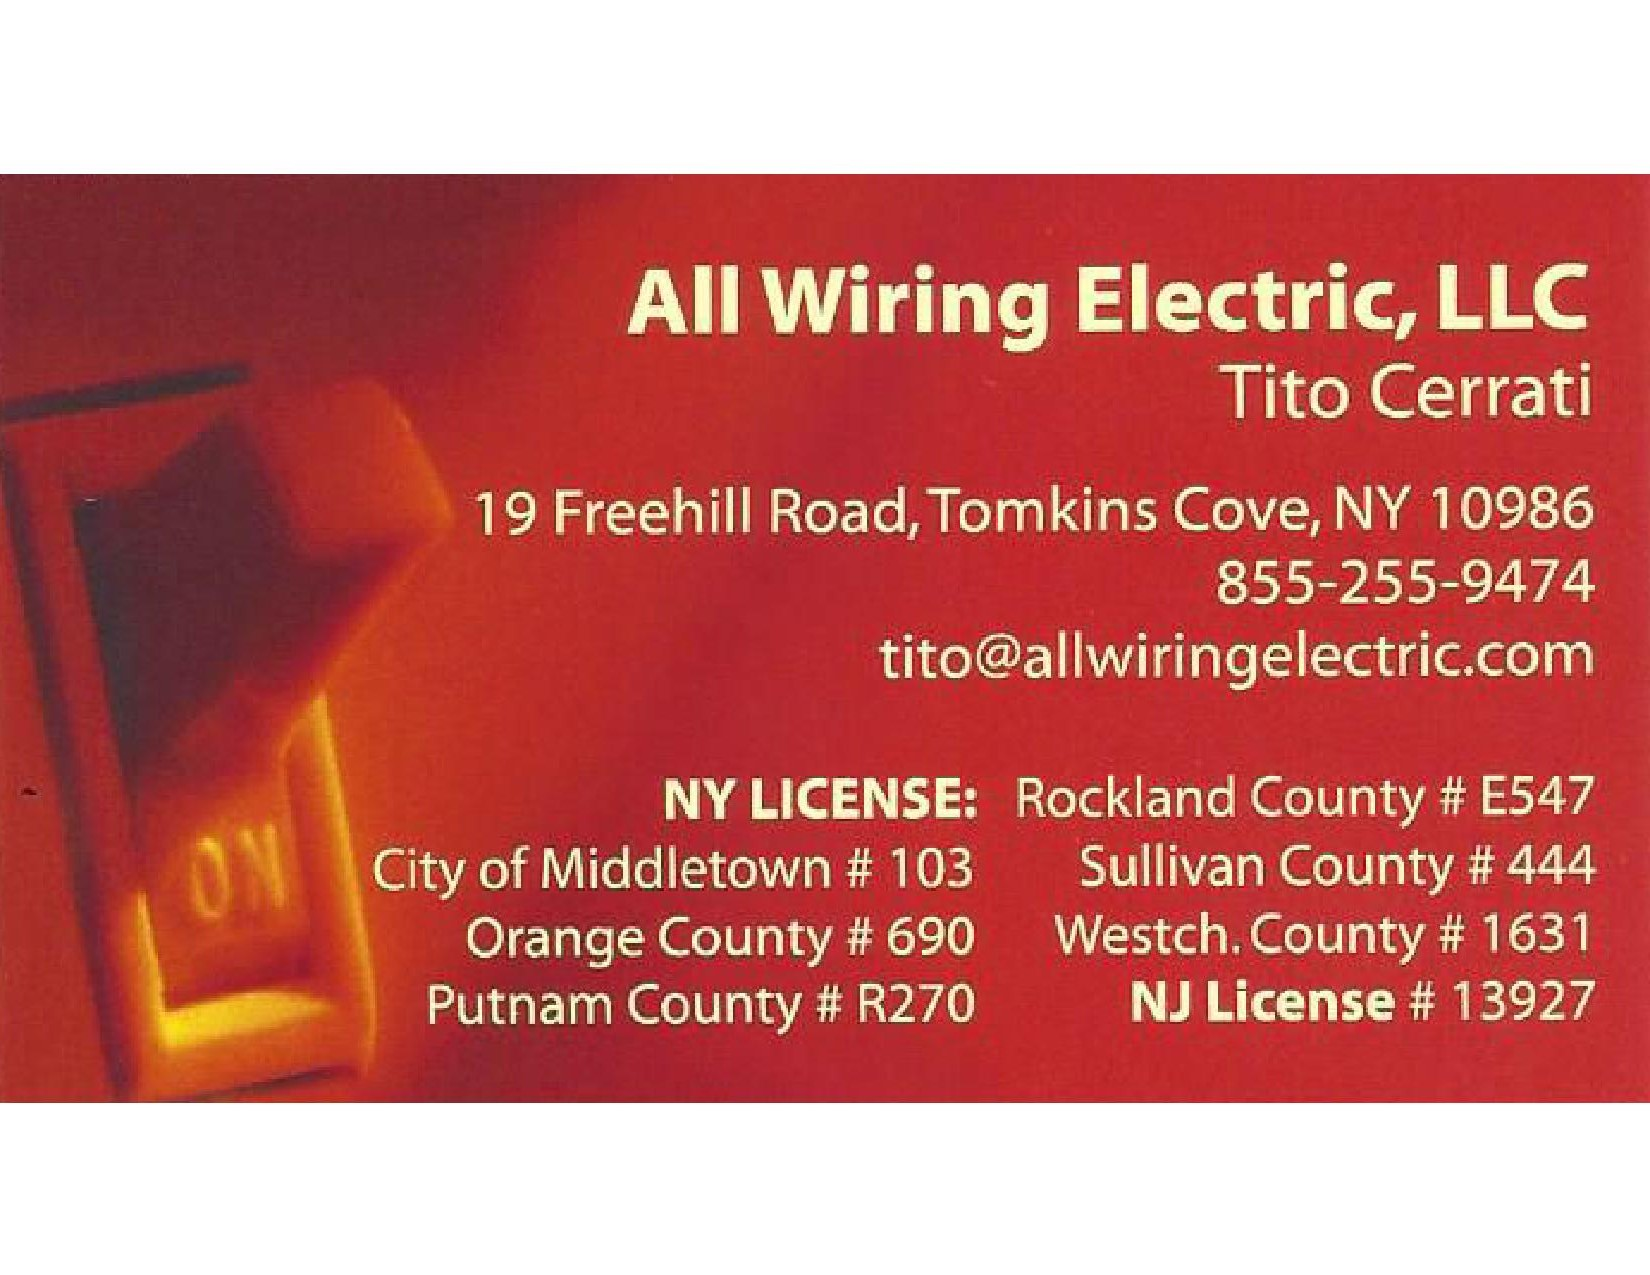 All Wiring Electric, LLC